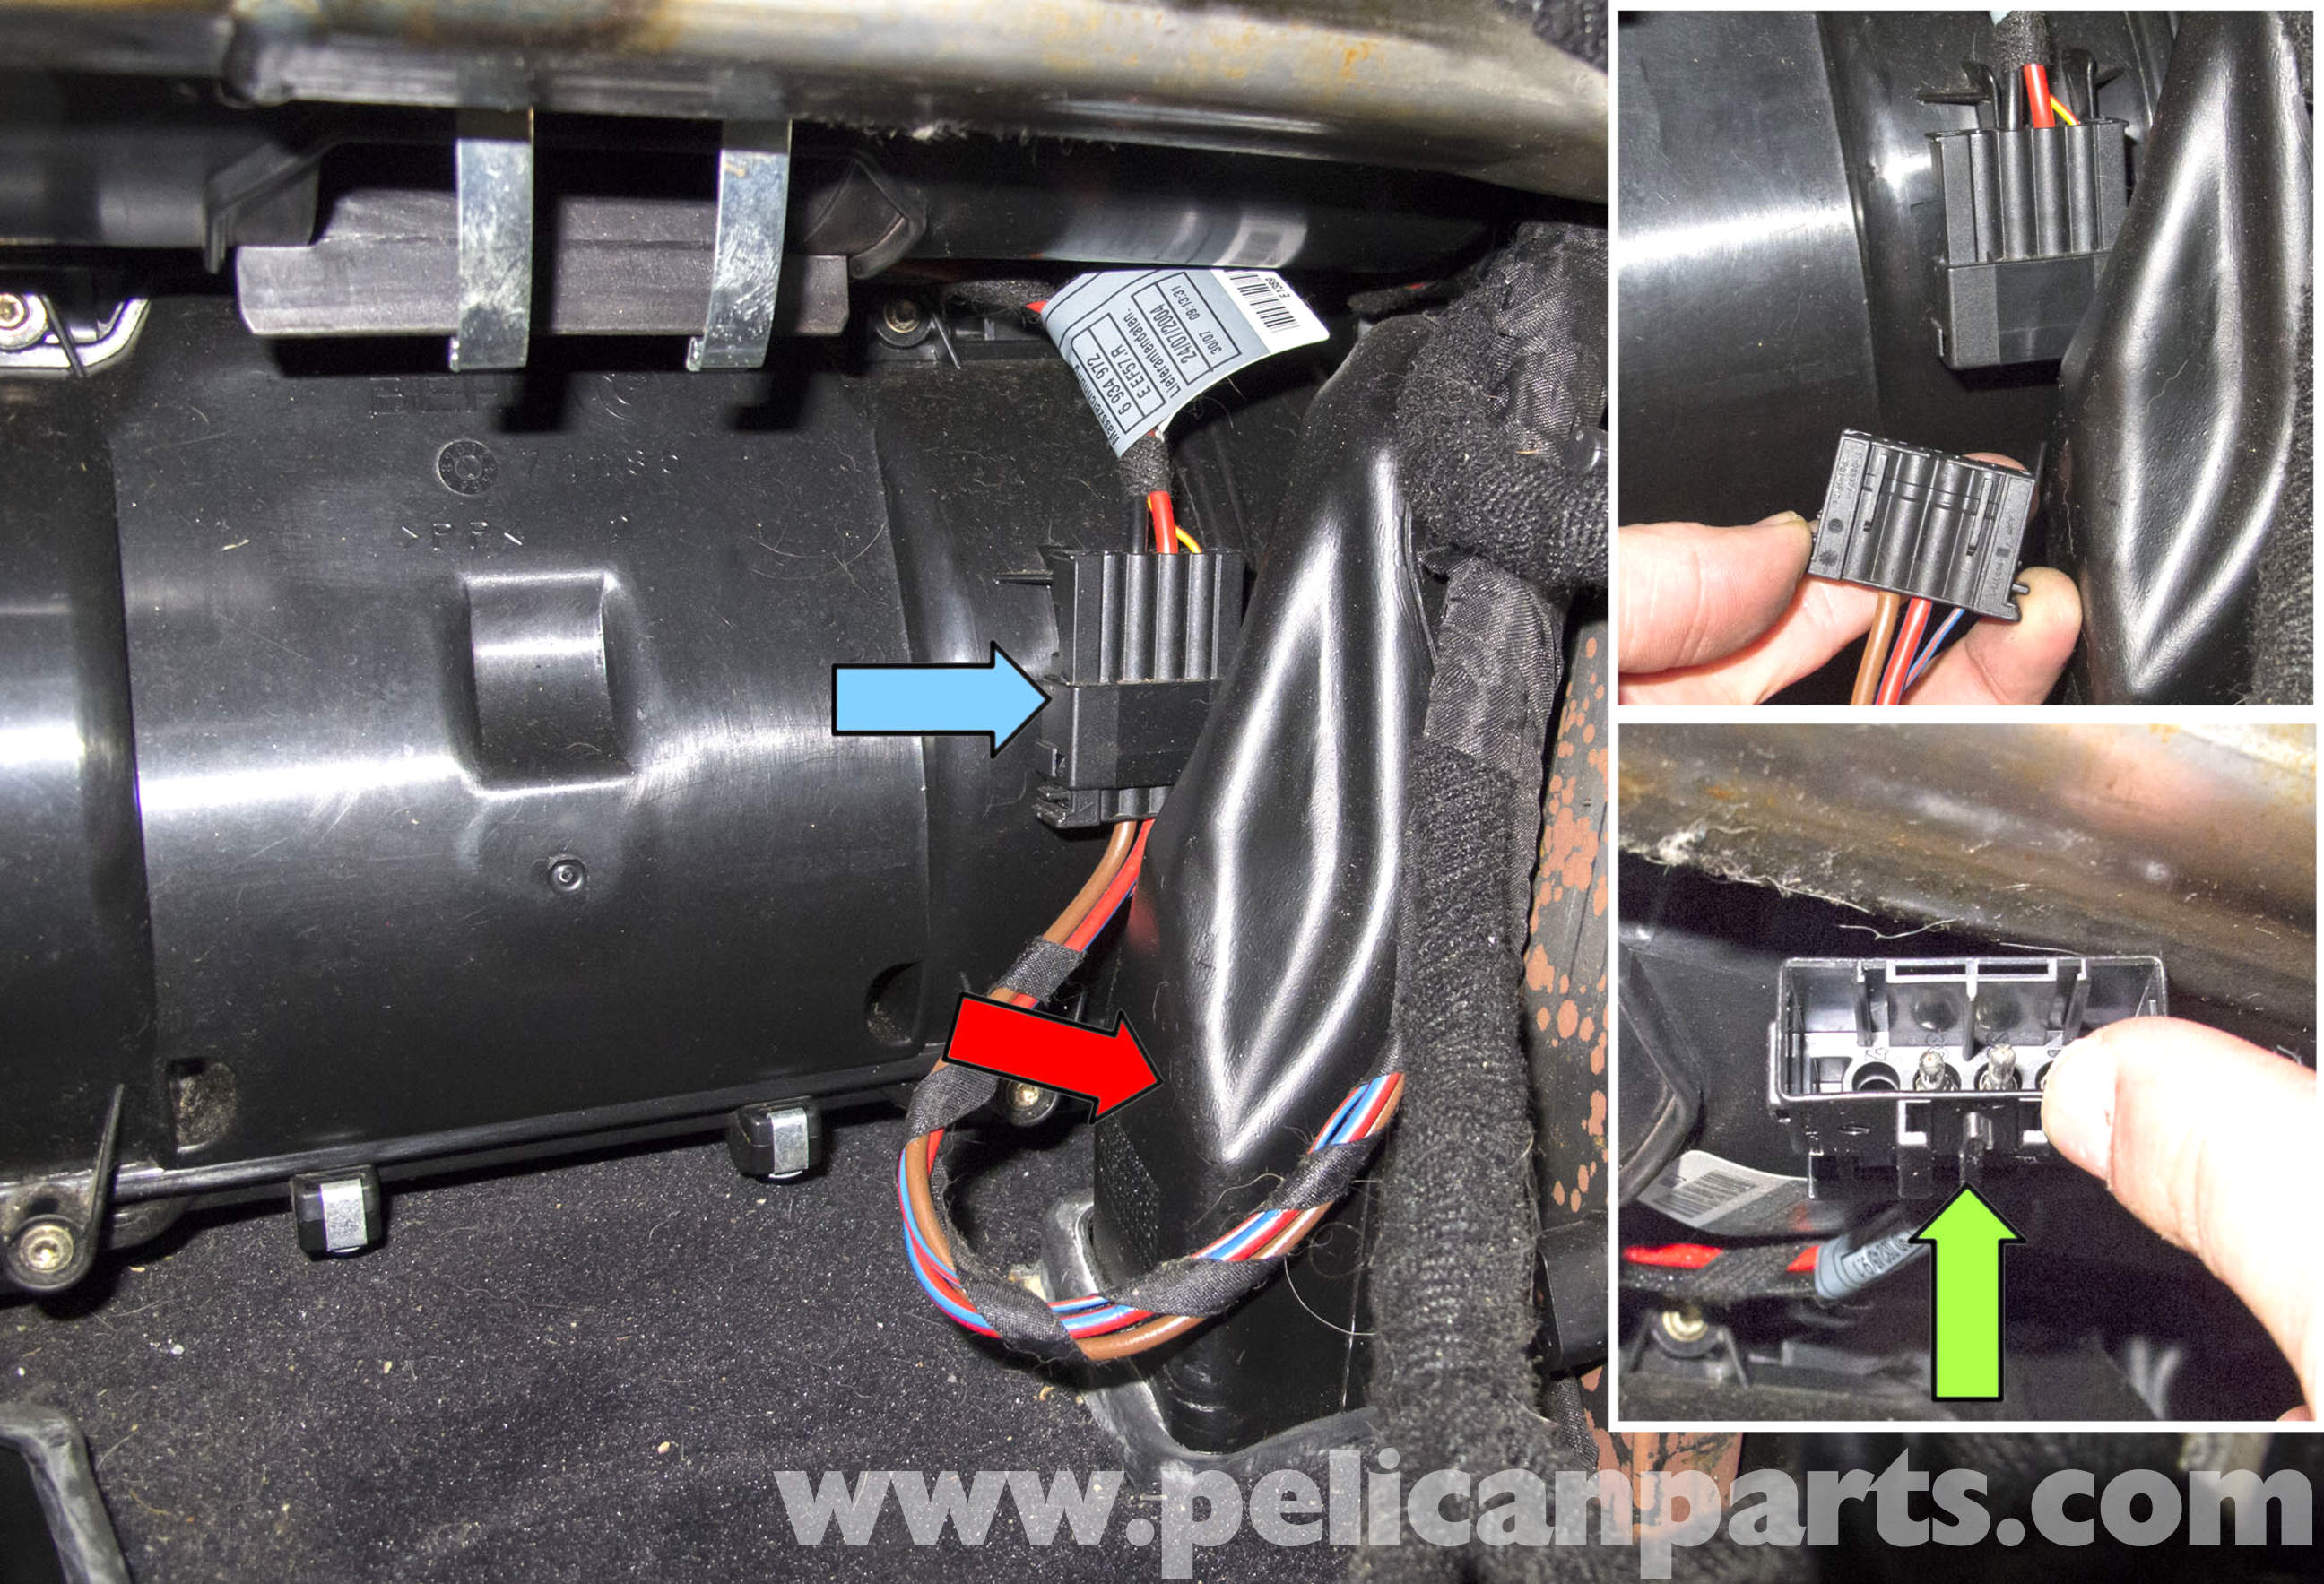 1993 Vw Passat Electrical Schematic in addition 1964 Ford Falcon Ranchero Wiring Diagram further 2002 Ford Focus Zxw Fuse Box Diagram in addition Jk Parts Labeled 245491 in addition 66 ELEC Blower Motor   Blower Motor Resistor Replacement. on bmw blower motor